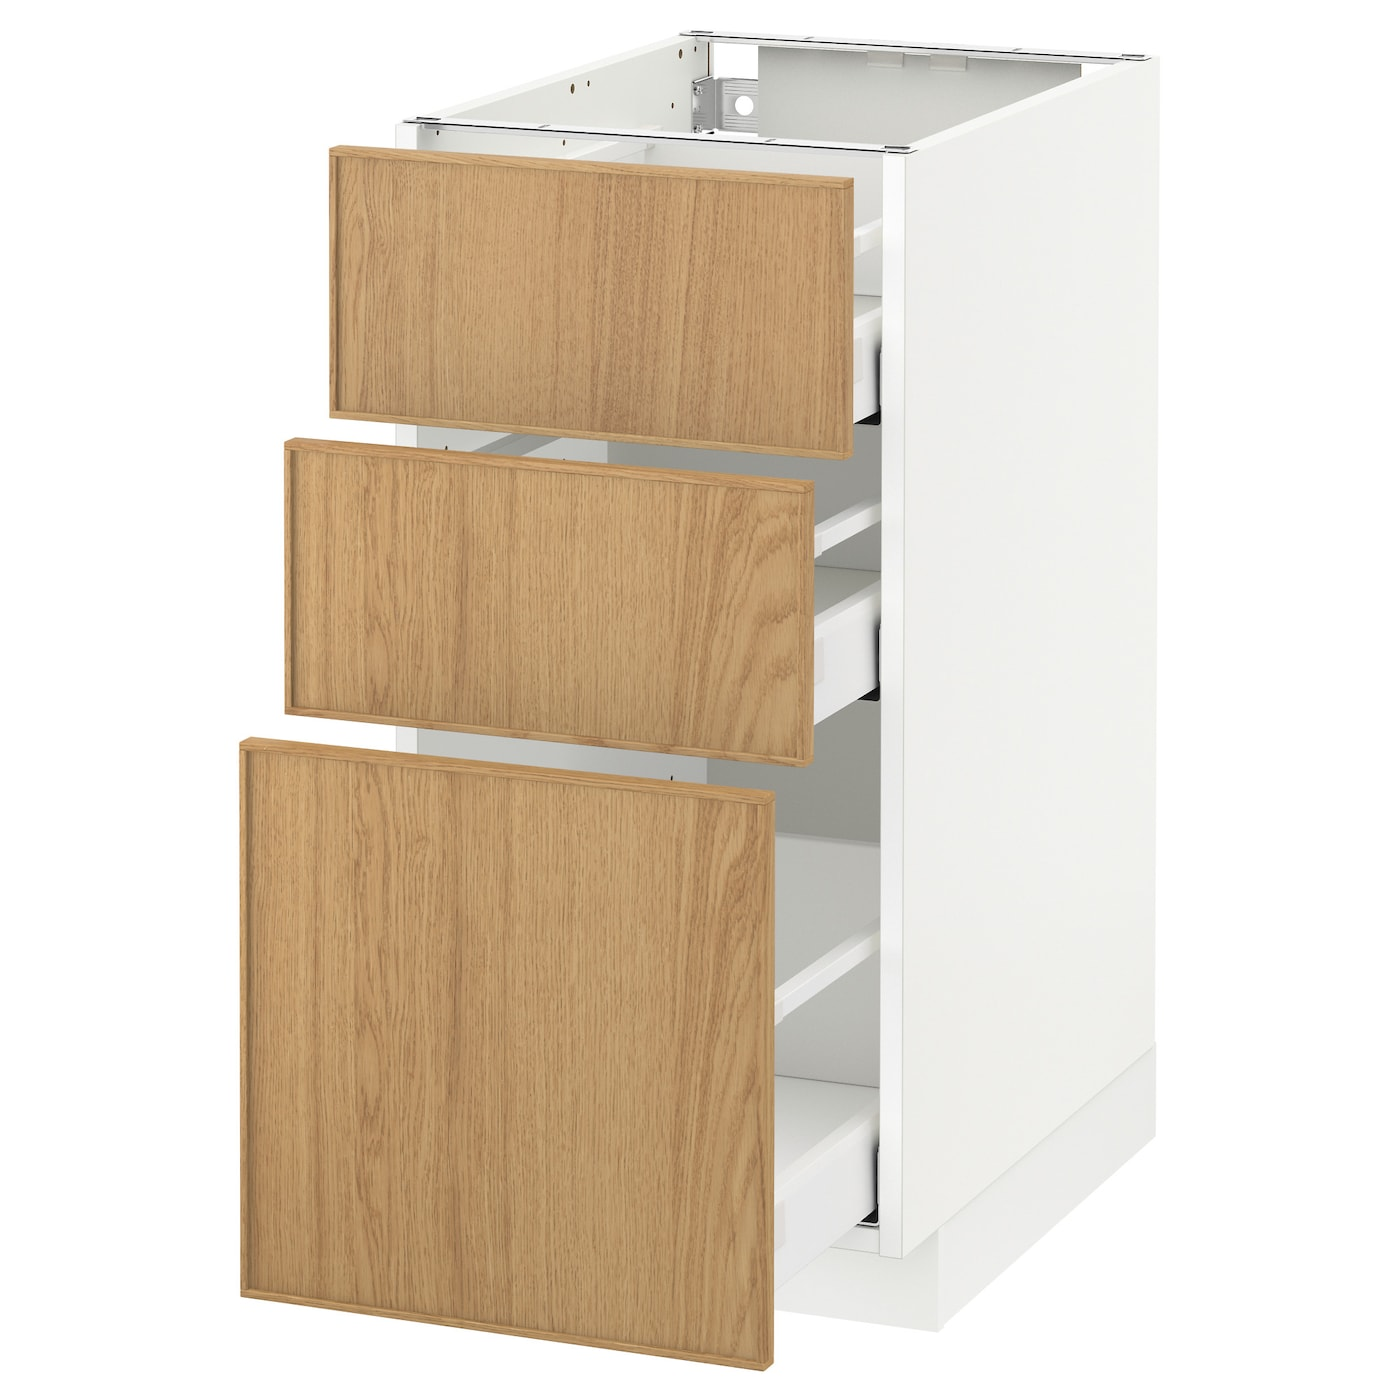 Metod maximera base cabinet with 3 drawers white ekestad for White oak cabinets kitchen